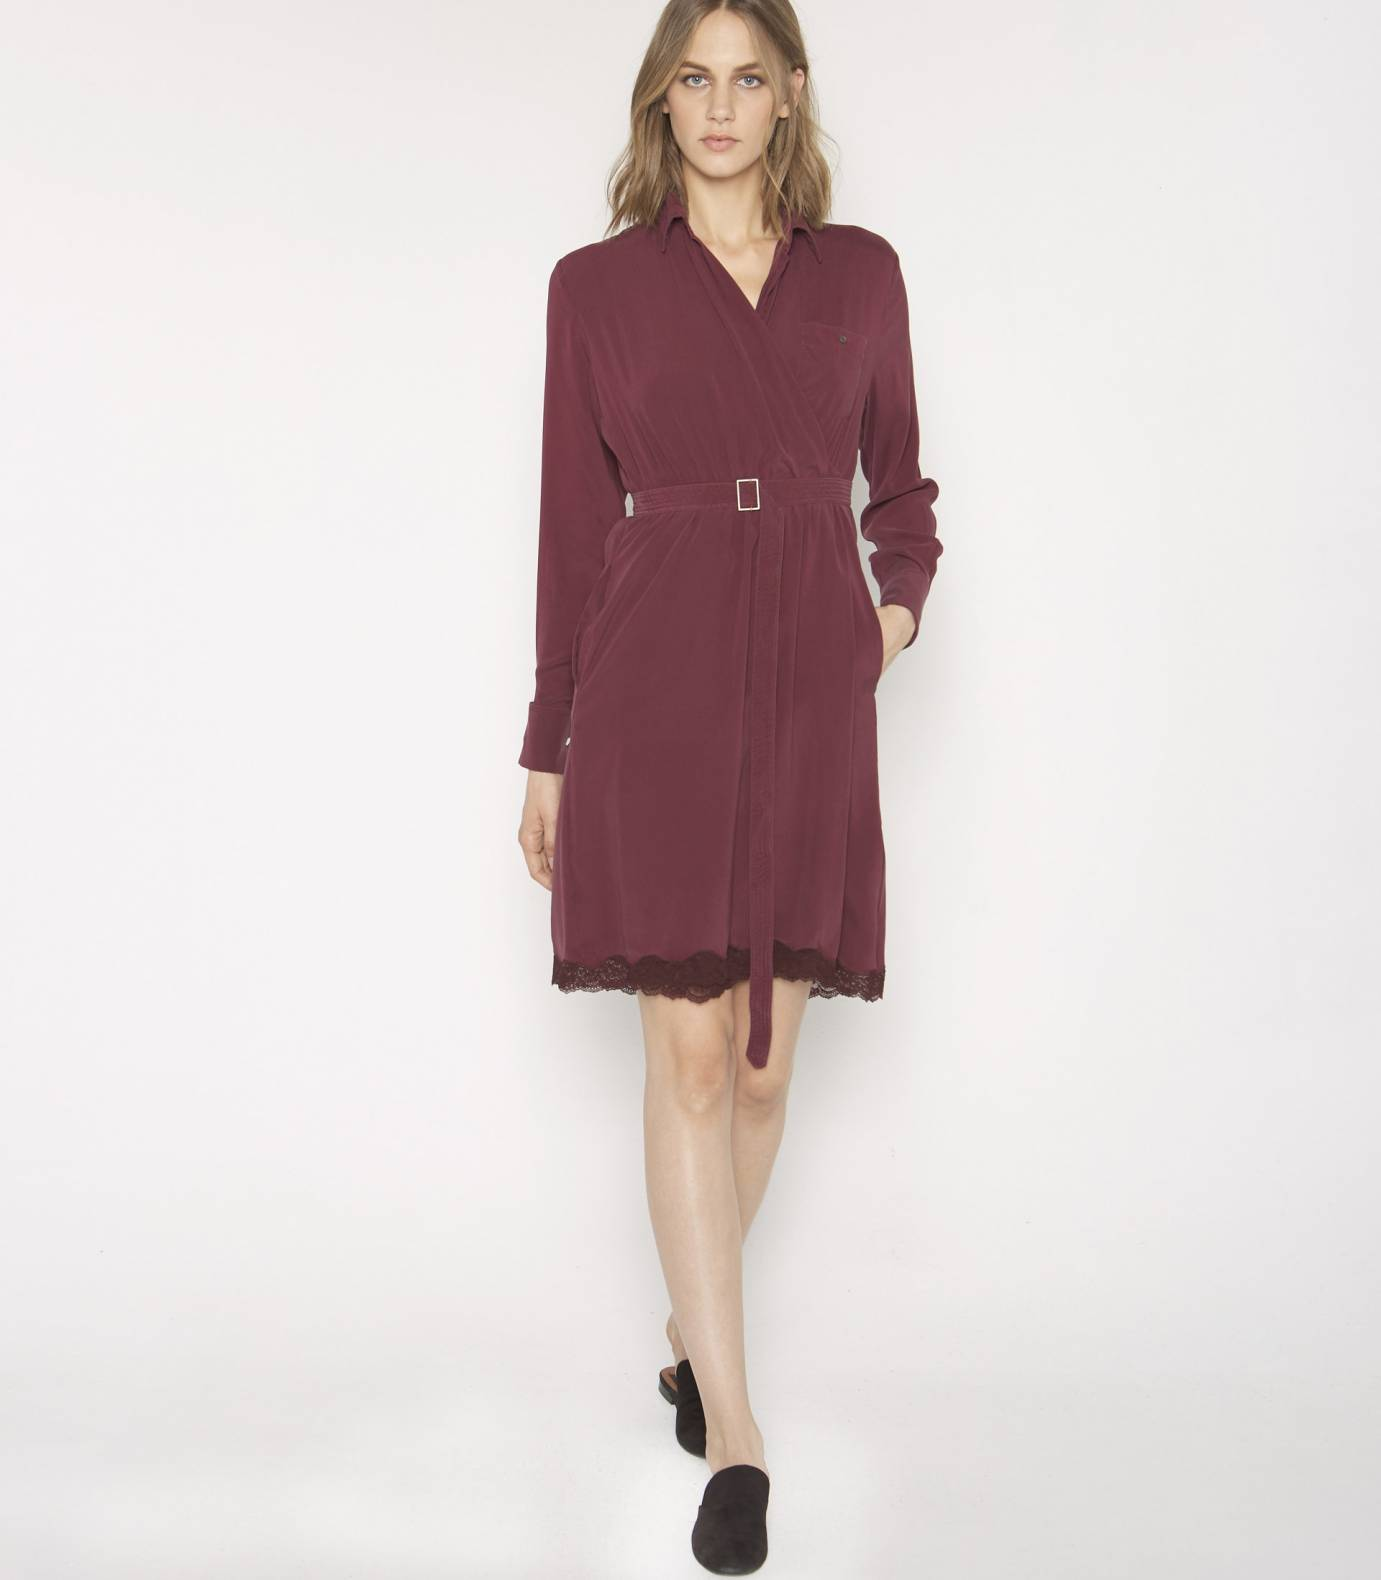 Silk shirtdress